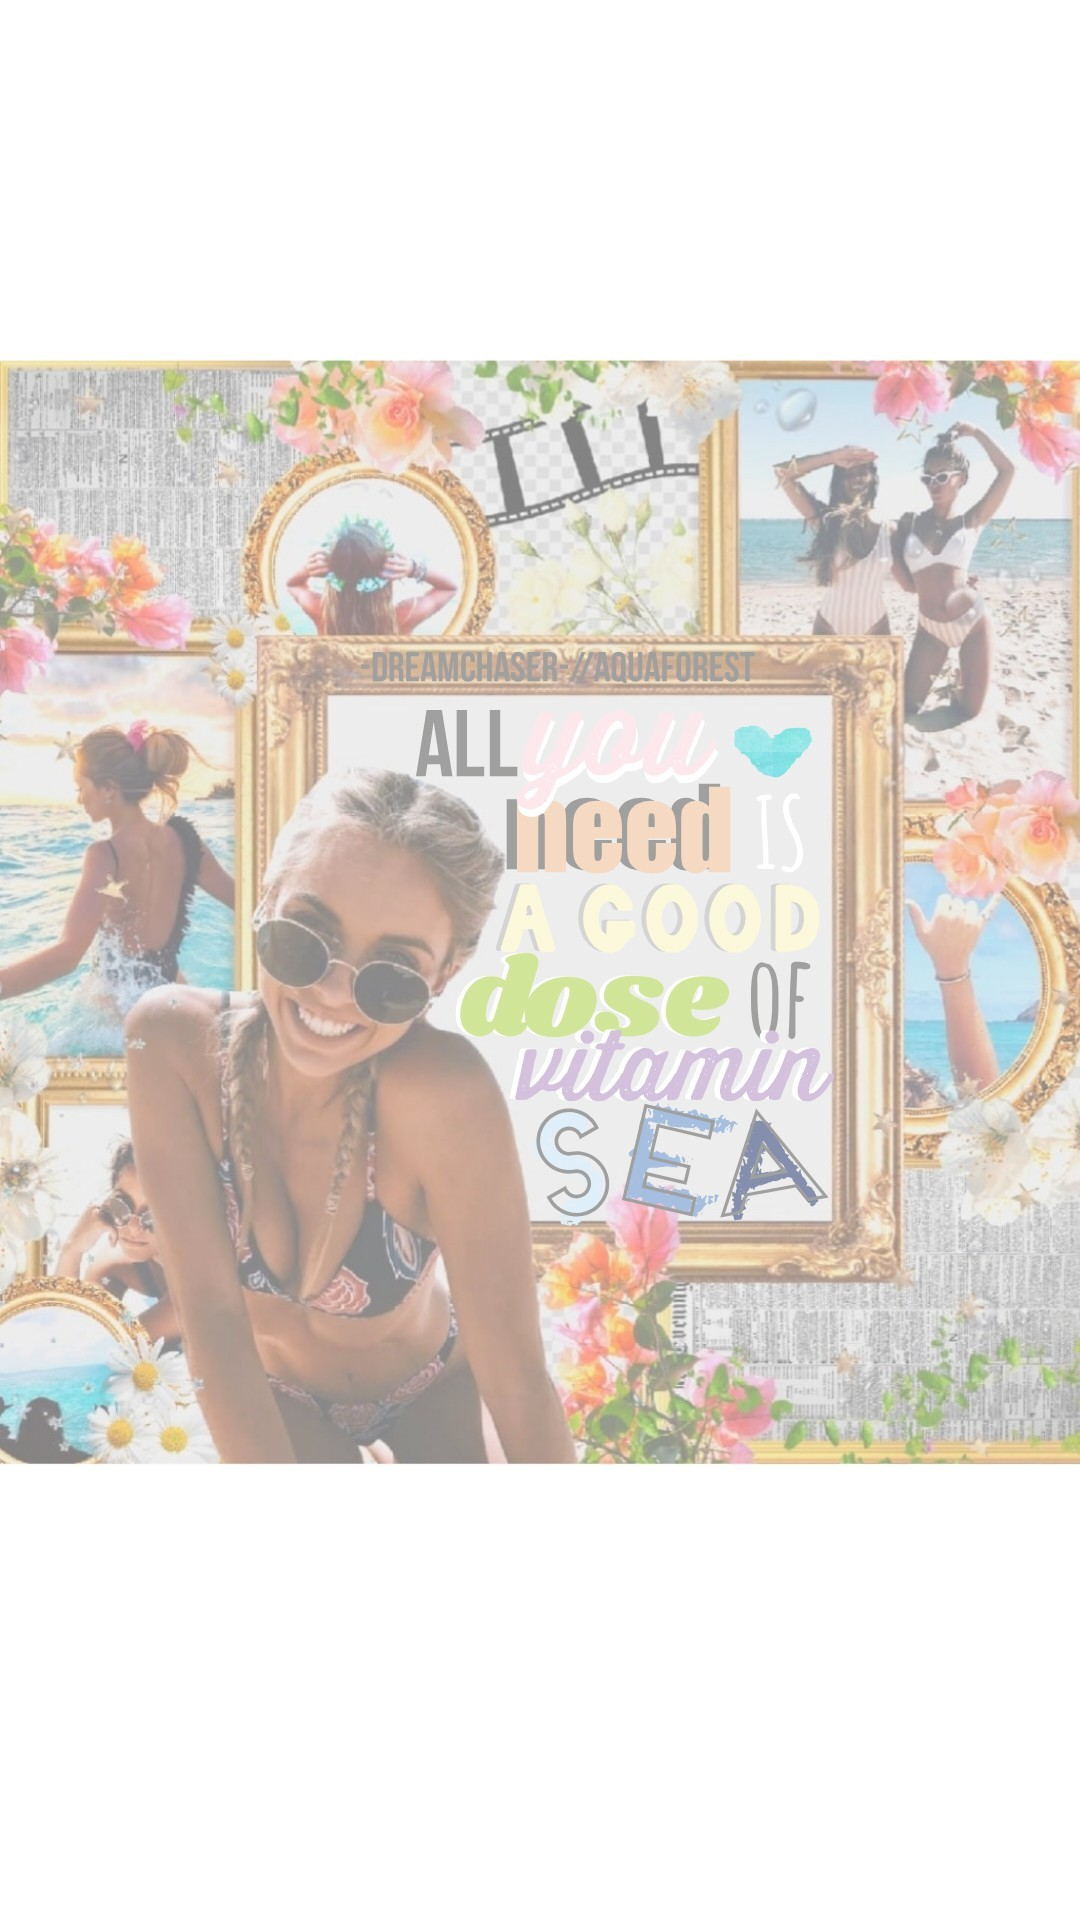 🥁Collab with.....🥁 aquaforest!!!!!! I feel like soo honored to be collabing with her, her collages are STUNNINGG👏🏼🦋💞 I did the terrible text and SHE DID THE AMAZING BACKGROUND AND PNGS!! Go follow her now!